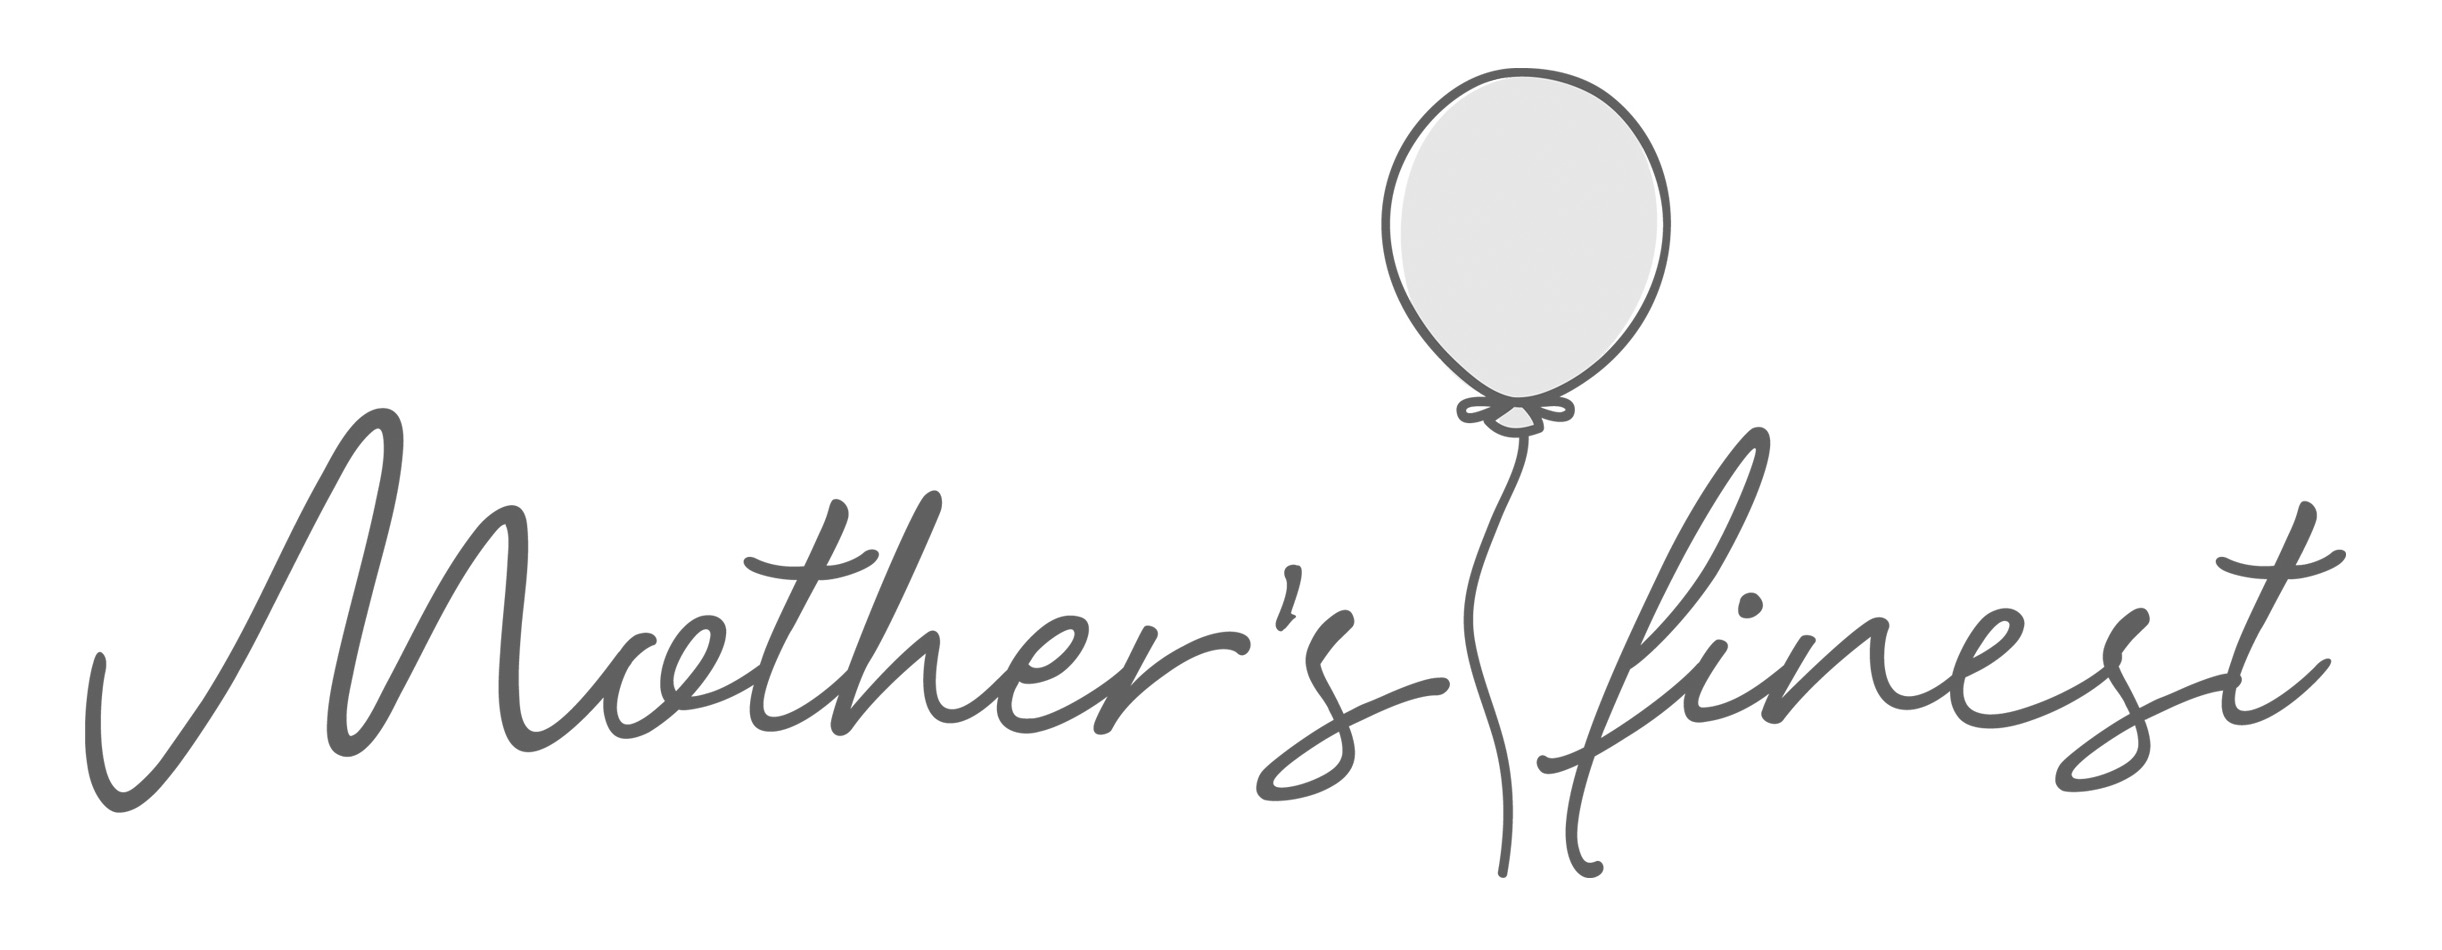 mothersfinest-blog-logo-1.jpeg